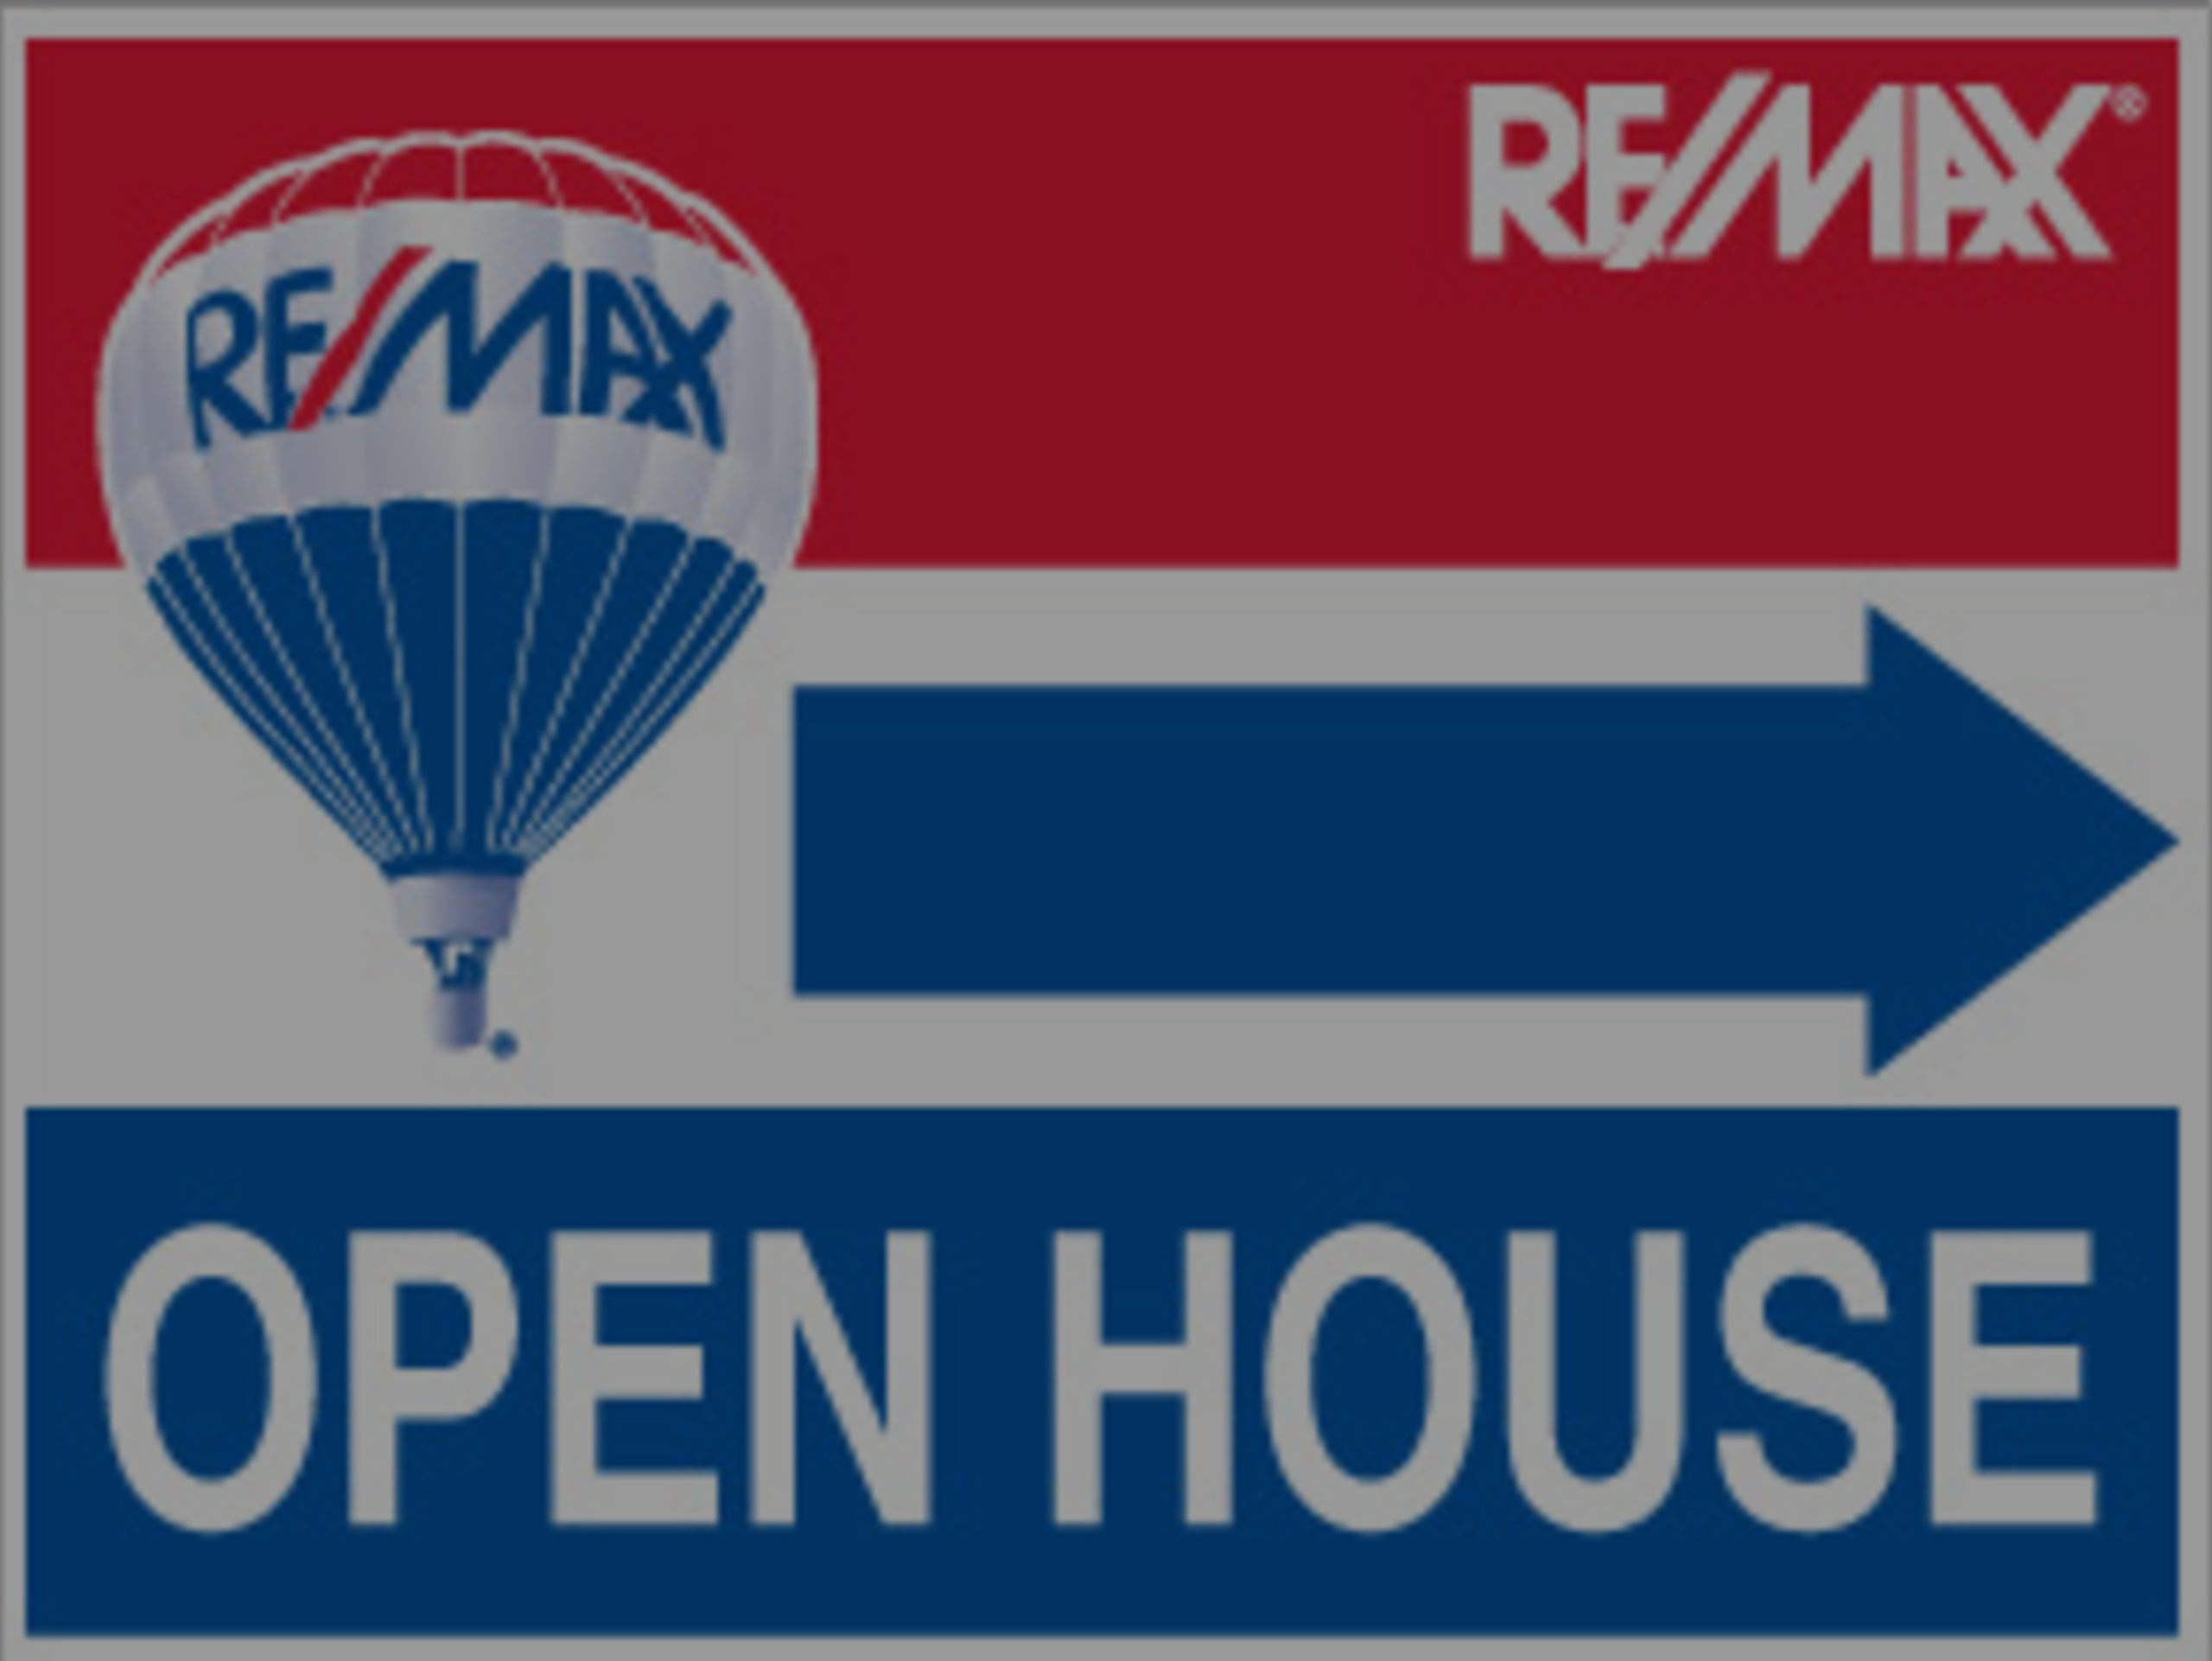 Appearances & Realities of Open Houses